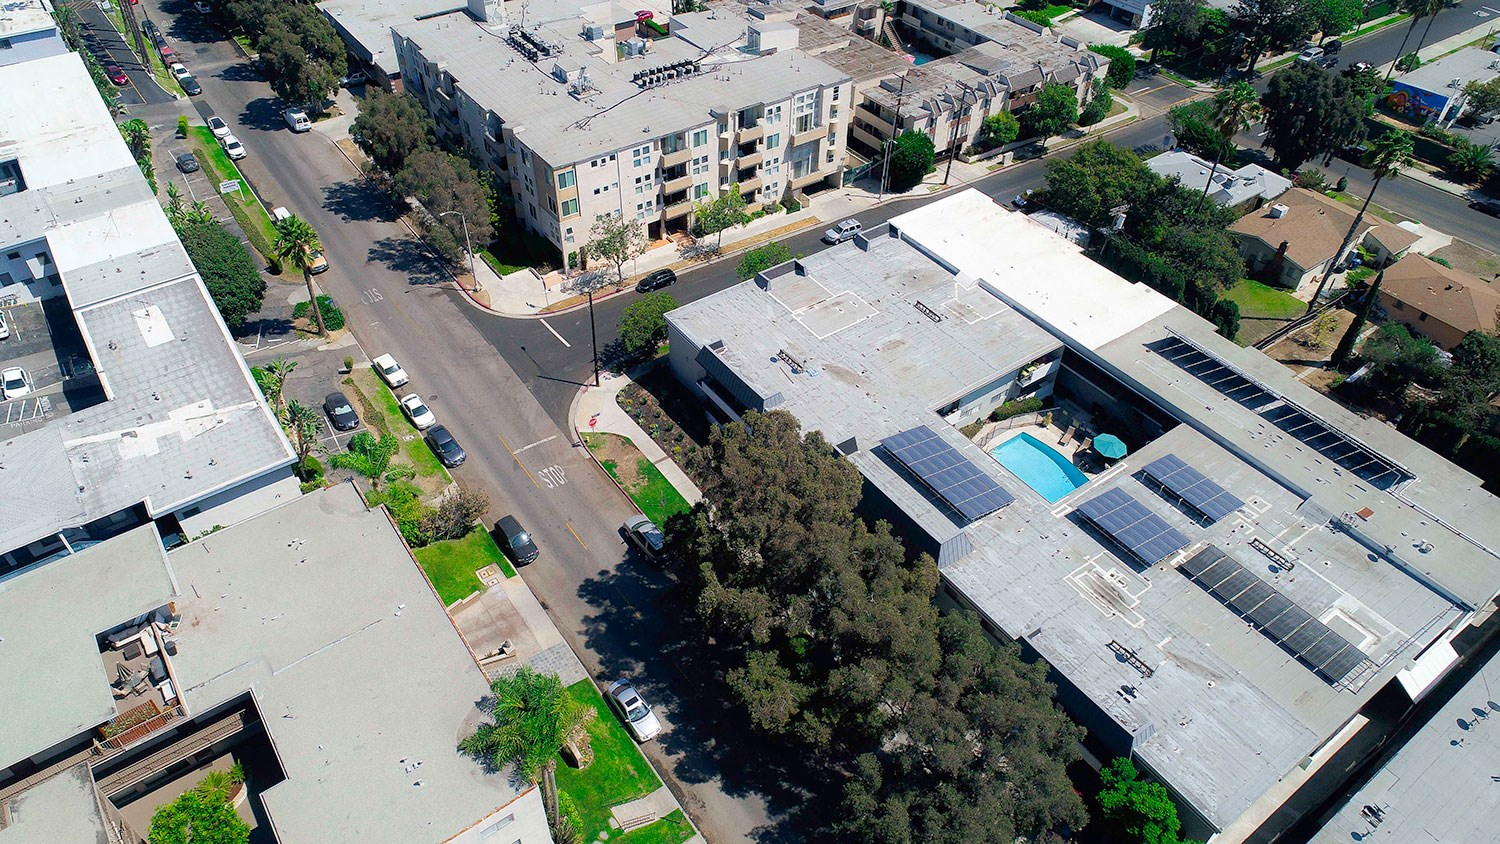 Aerial drone image of Rose Apartments and courtyard with pool.